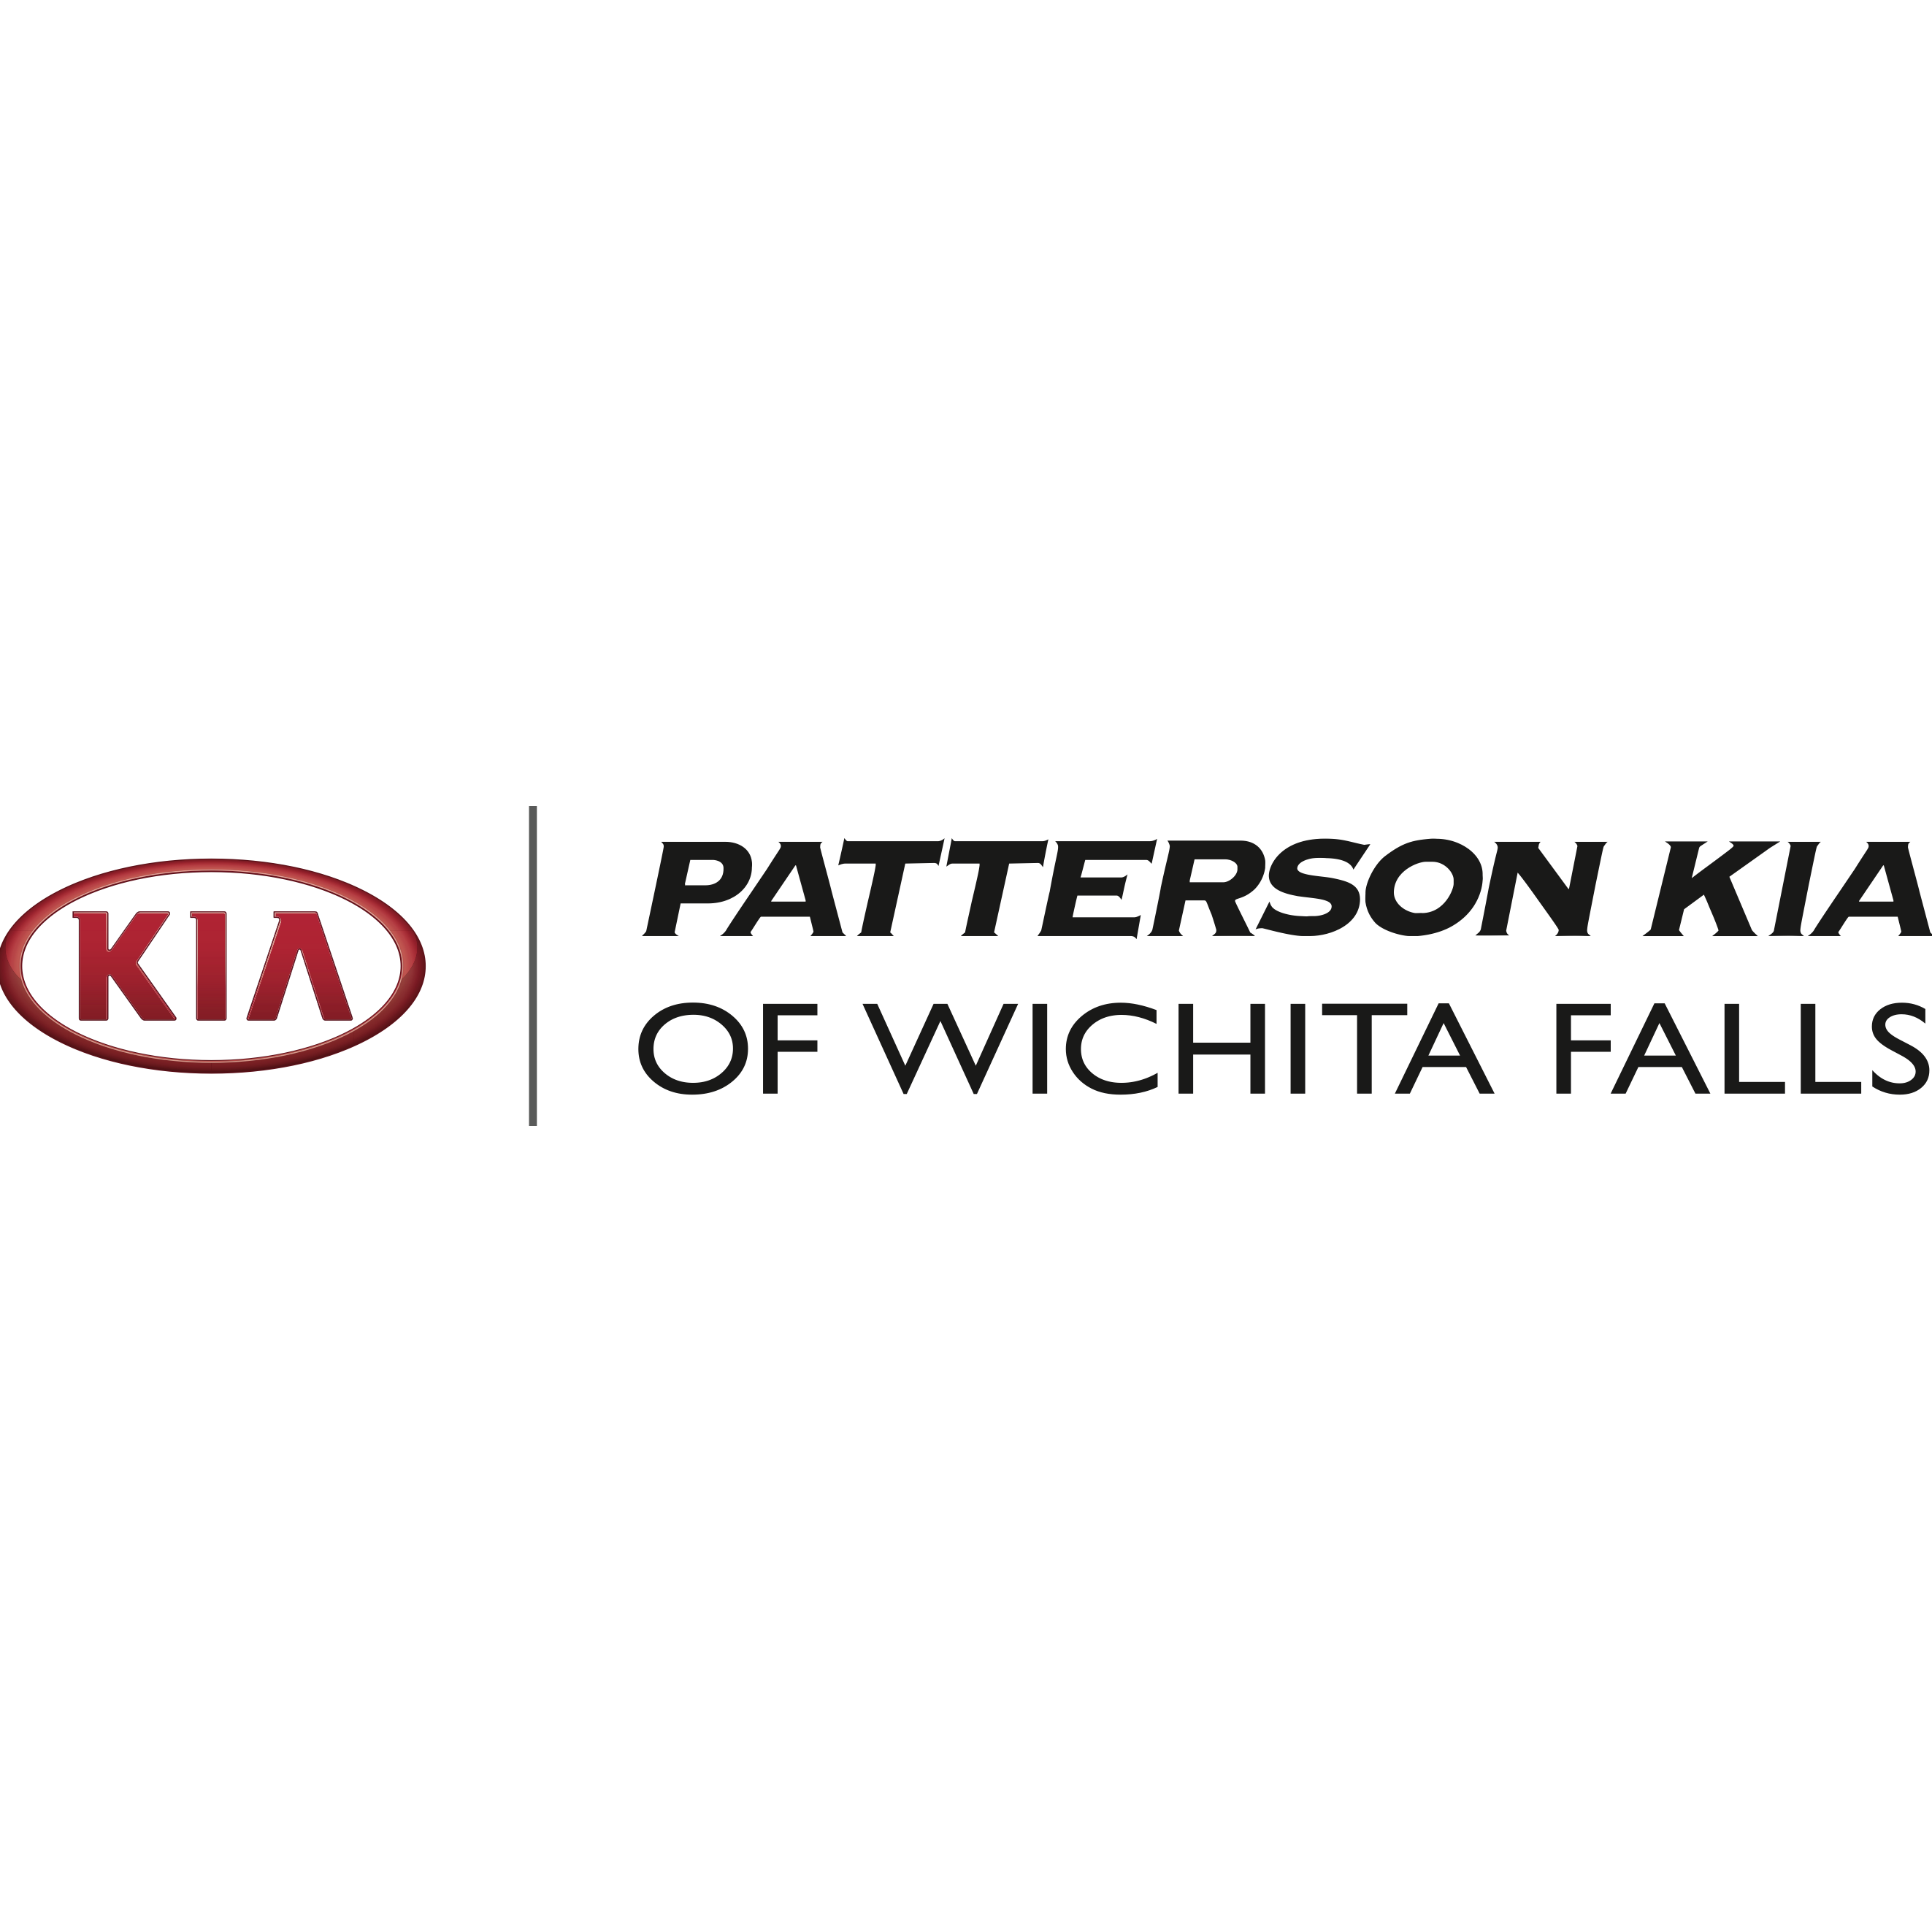 patterson cadillac of wichita falls at 315 central freeway east wichita falls tx on fave. Black Bedroom Furniture Sets. Home Design Ideas